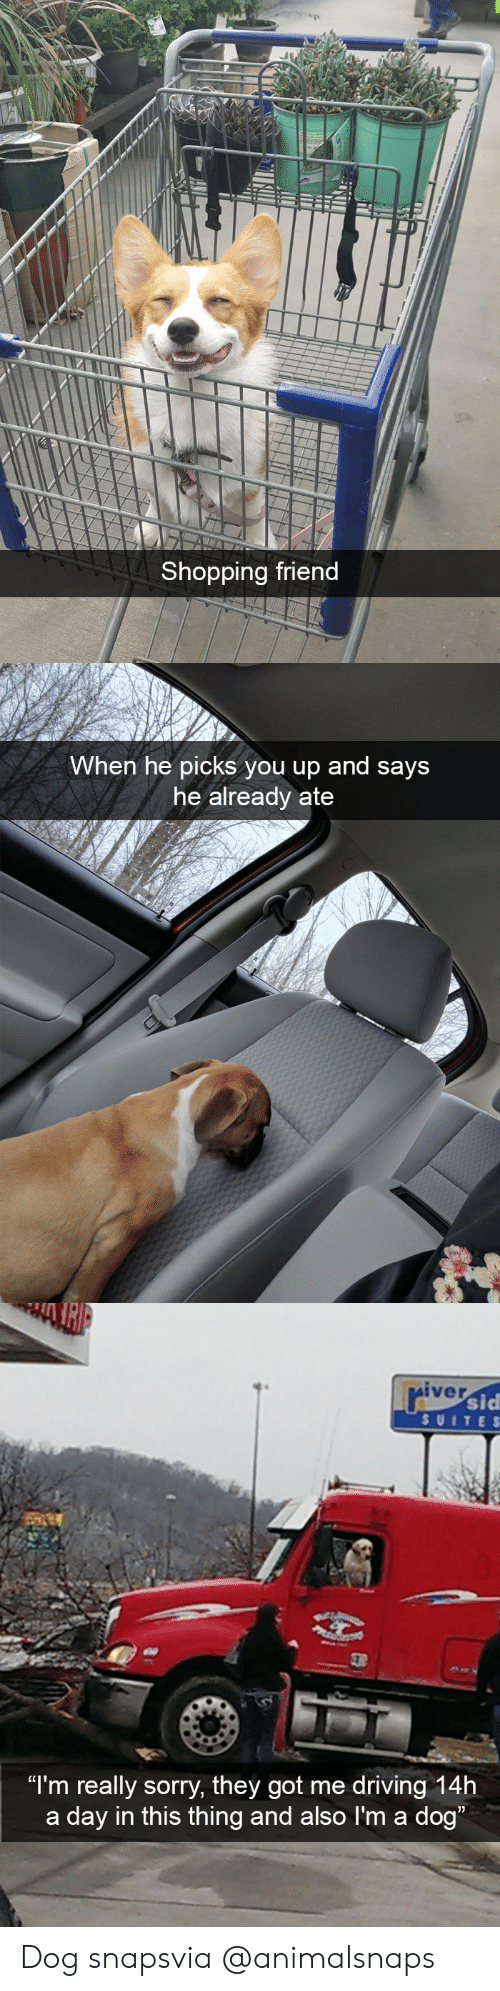 "Driving, Shopping, and Sorry: Shopping friend   When he picks you up and says  he already ate   iver  sid  SUITE S  ""I'm really sorry, they got me driving 14h  a day in this thing and also I'm a dog Dog snapsvia @animalsnaps"